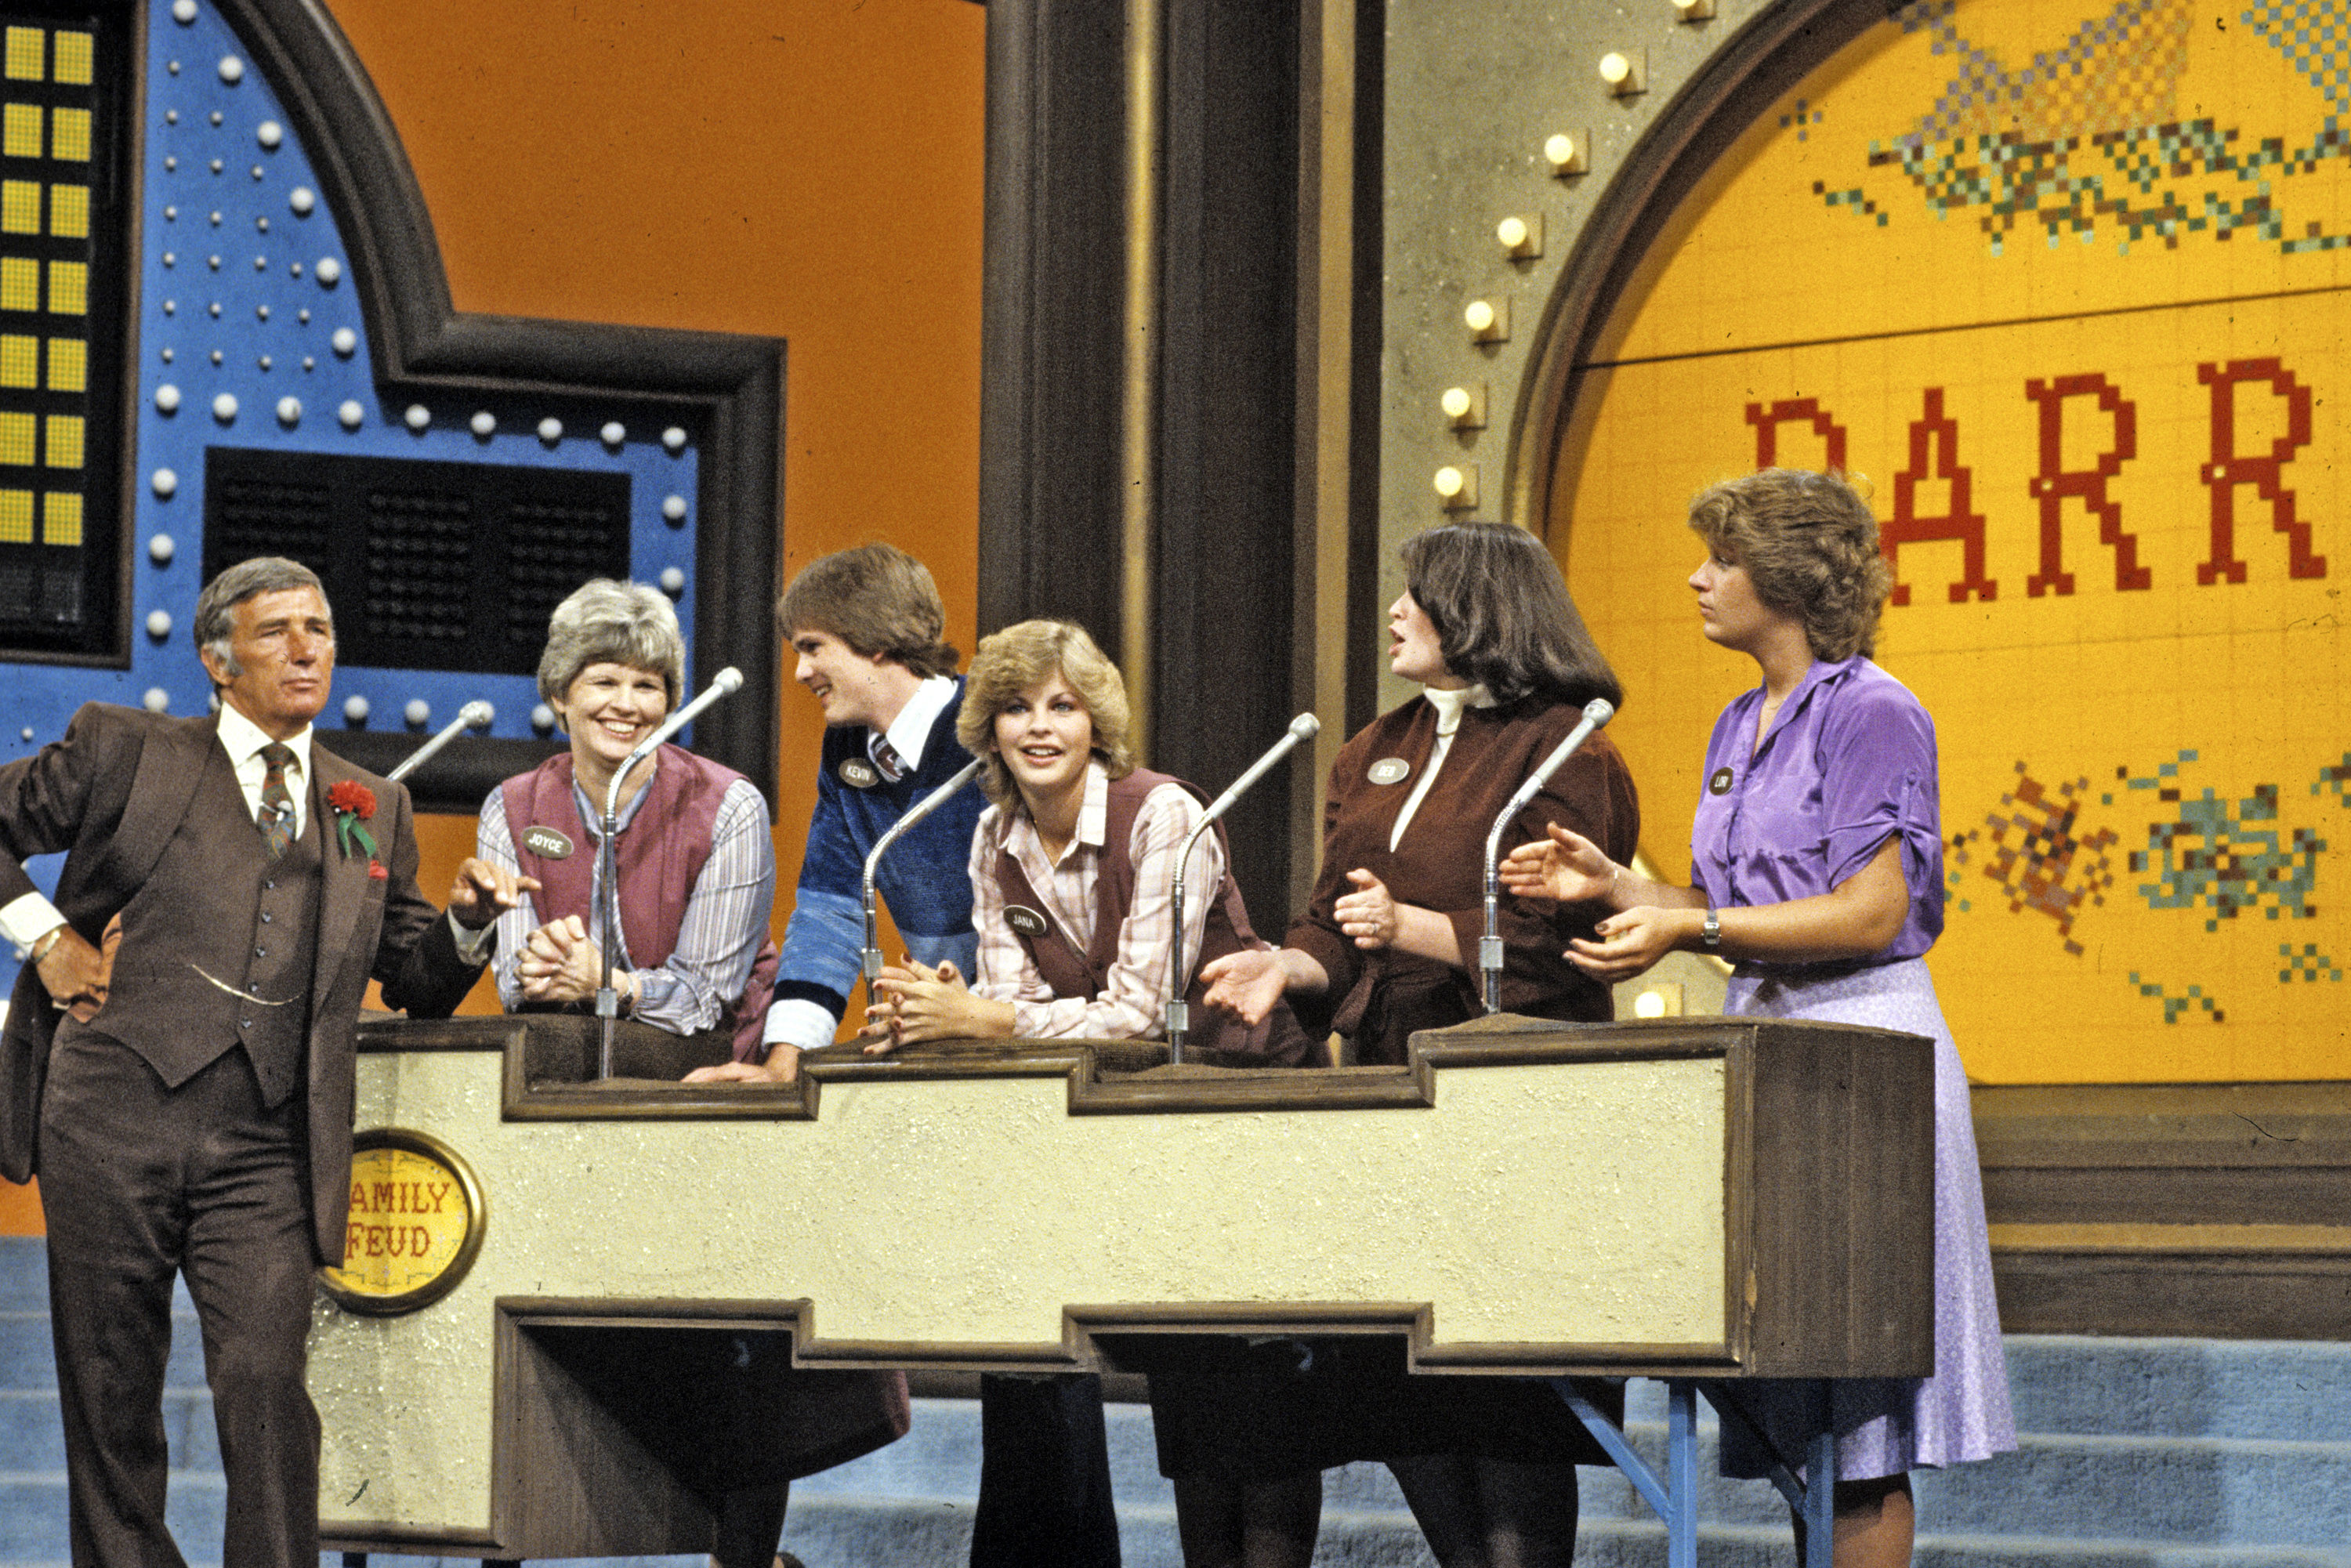 Survey Says! 19 Fun Facts About Family Feud